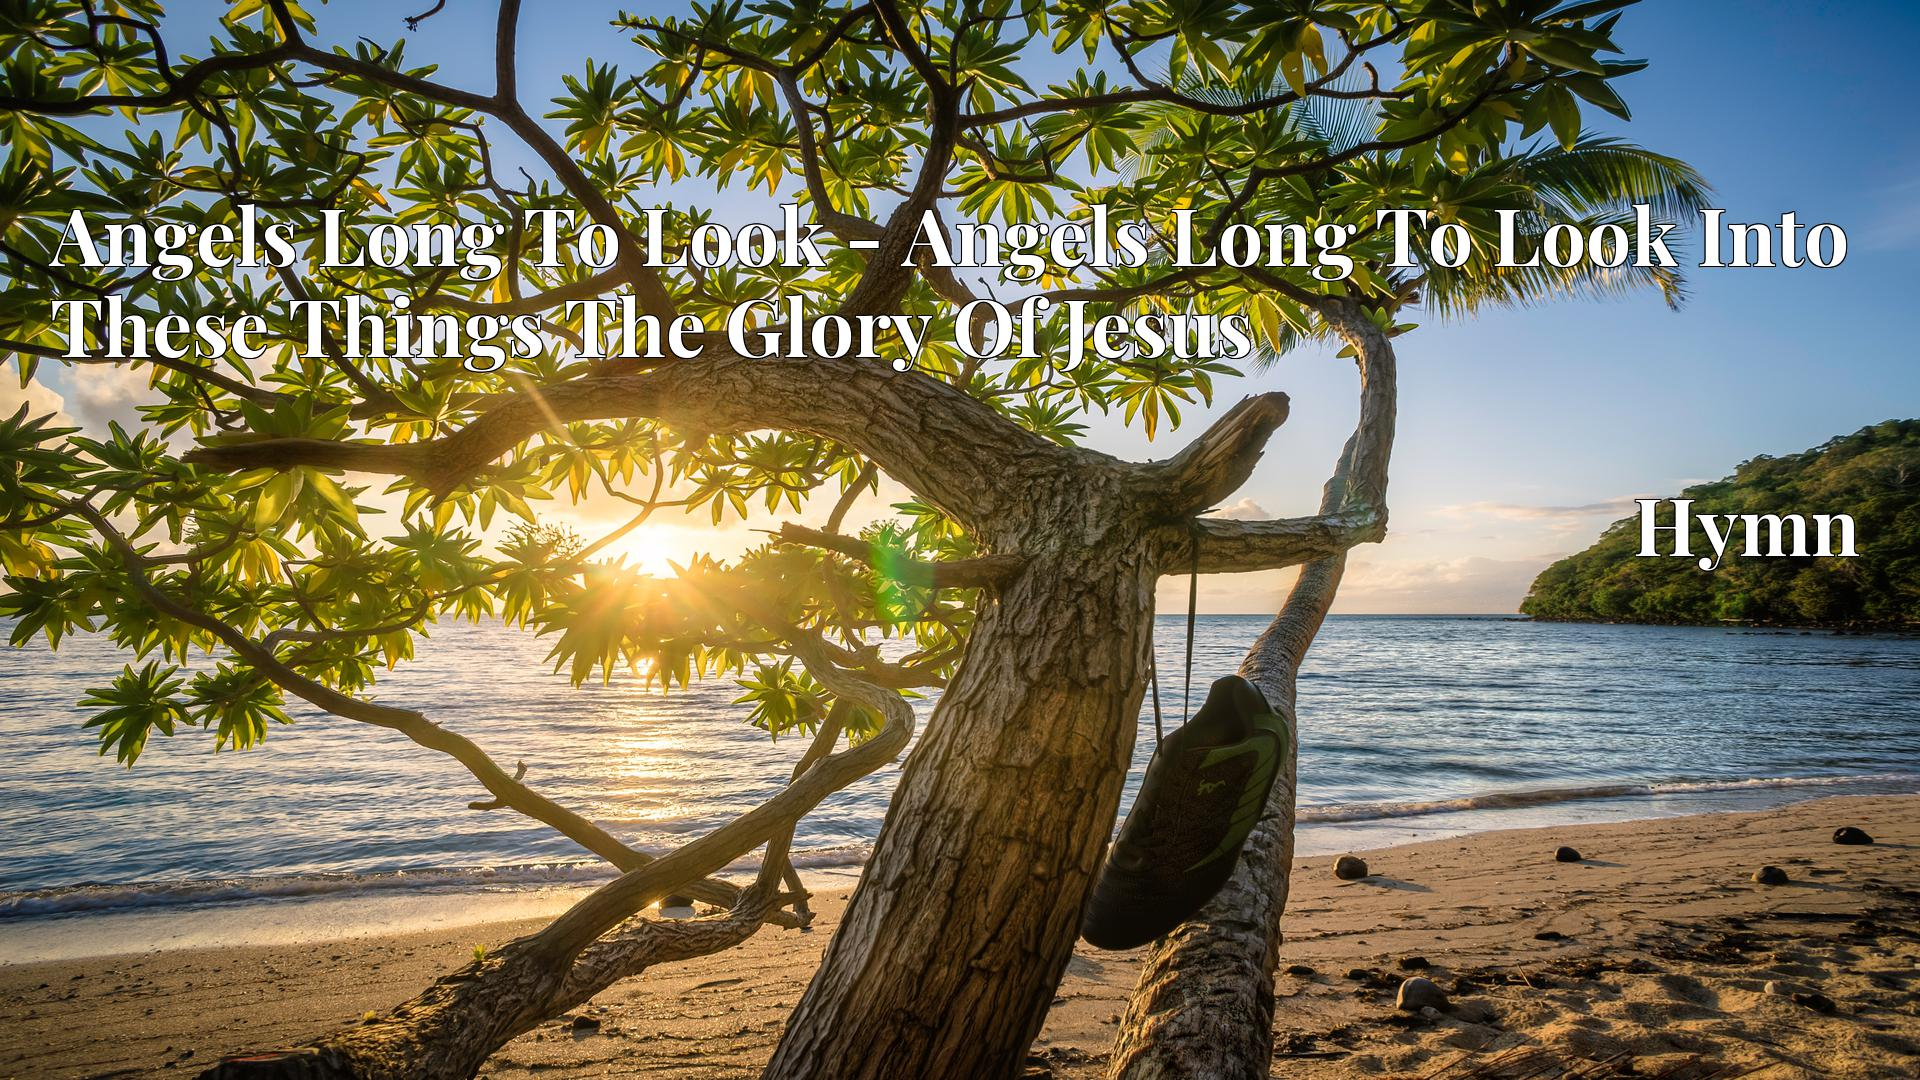 Angels Long To Look - Angels Long To Look Into These Things The Glory Of Jesus - Hymn